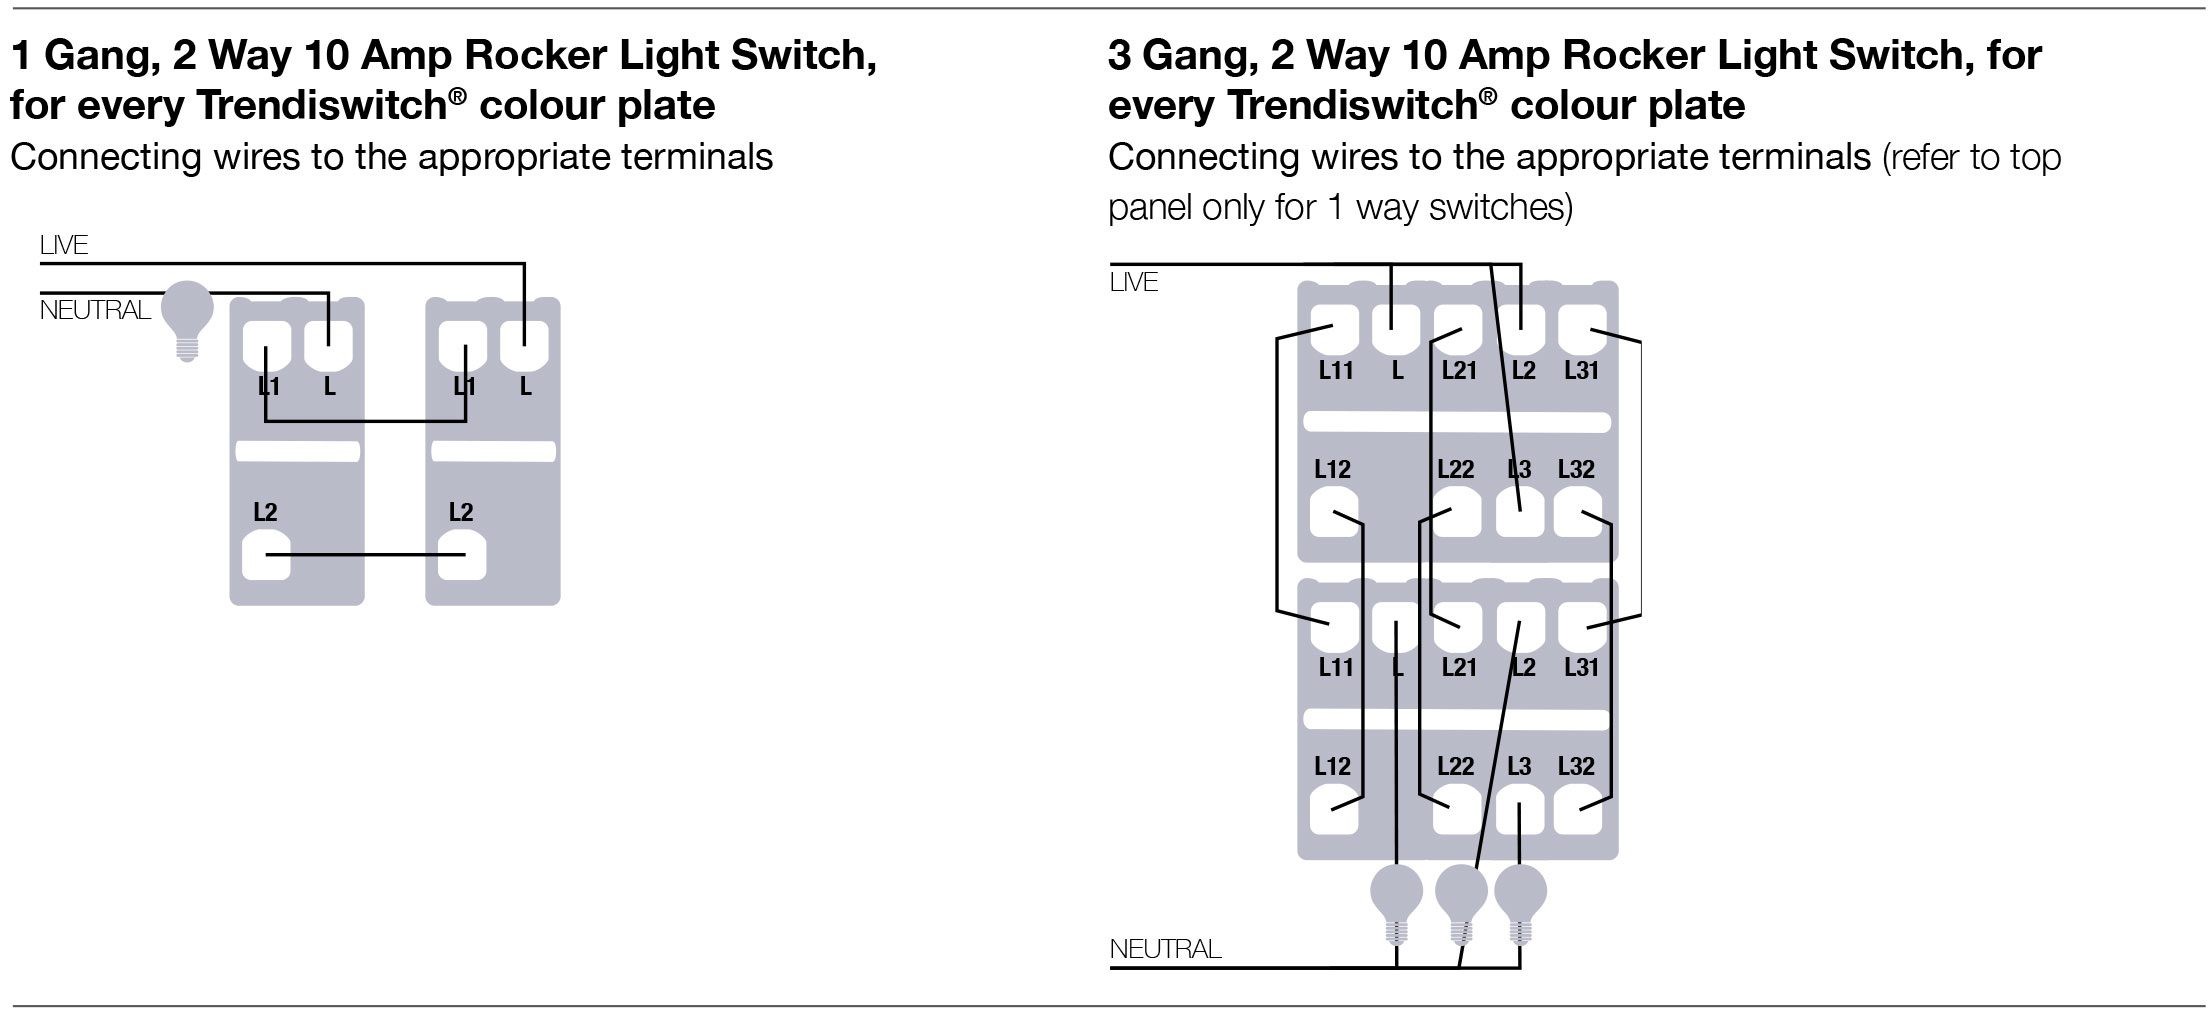 Enjoyable How To Wire A 2 Gang 1 Way Light Switch Light Switches Dimmers Wiring Cloud Hisonepsysticxongrecoveryedborg